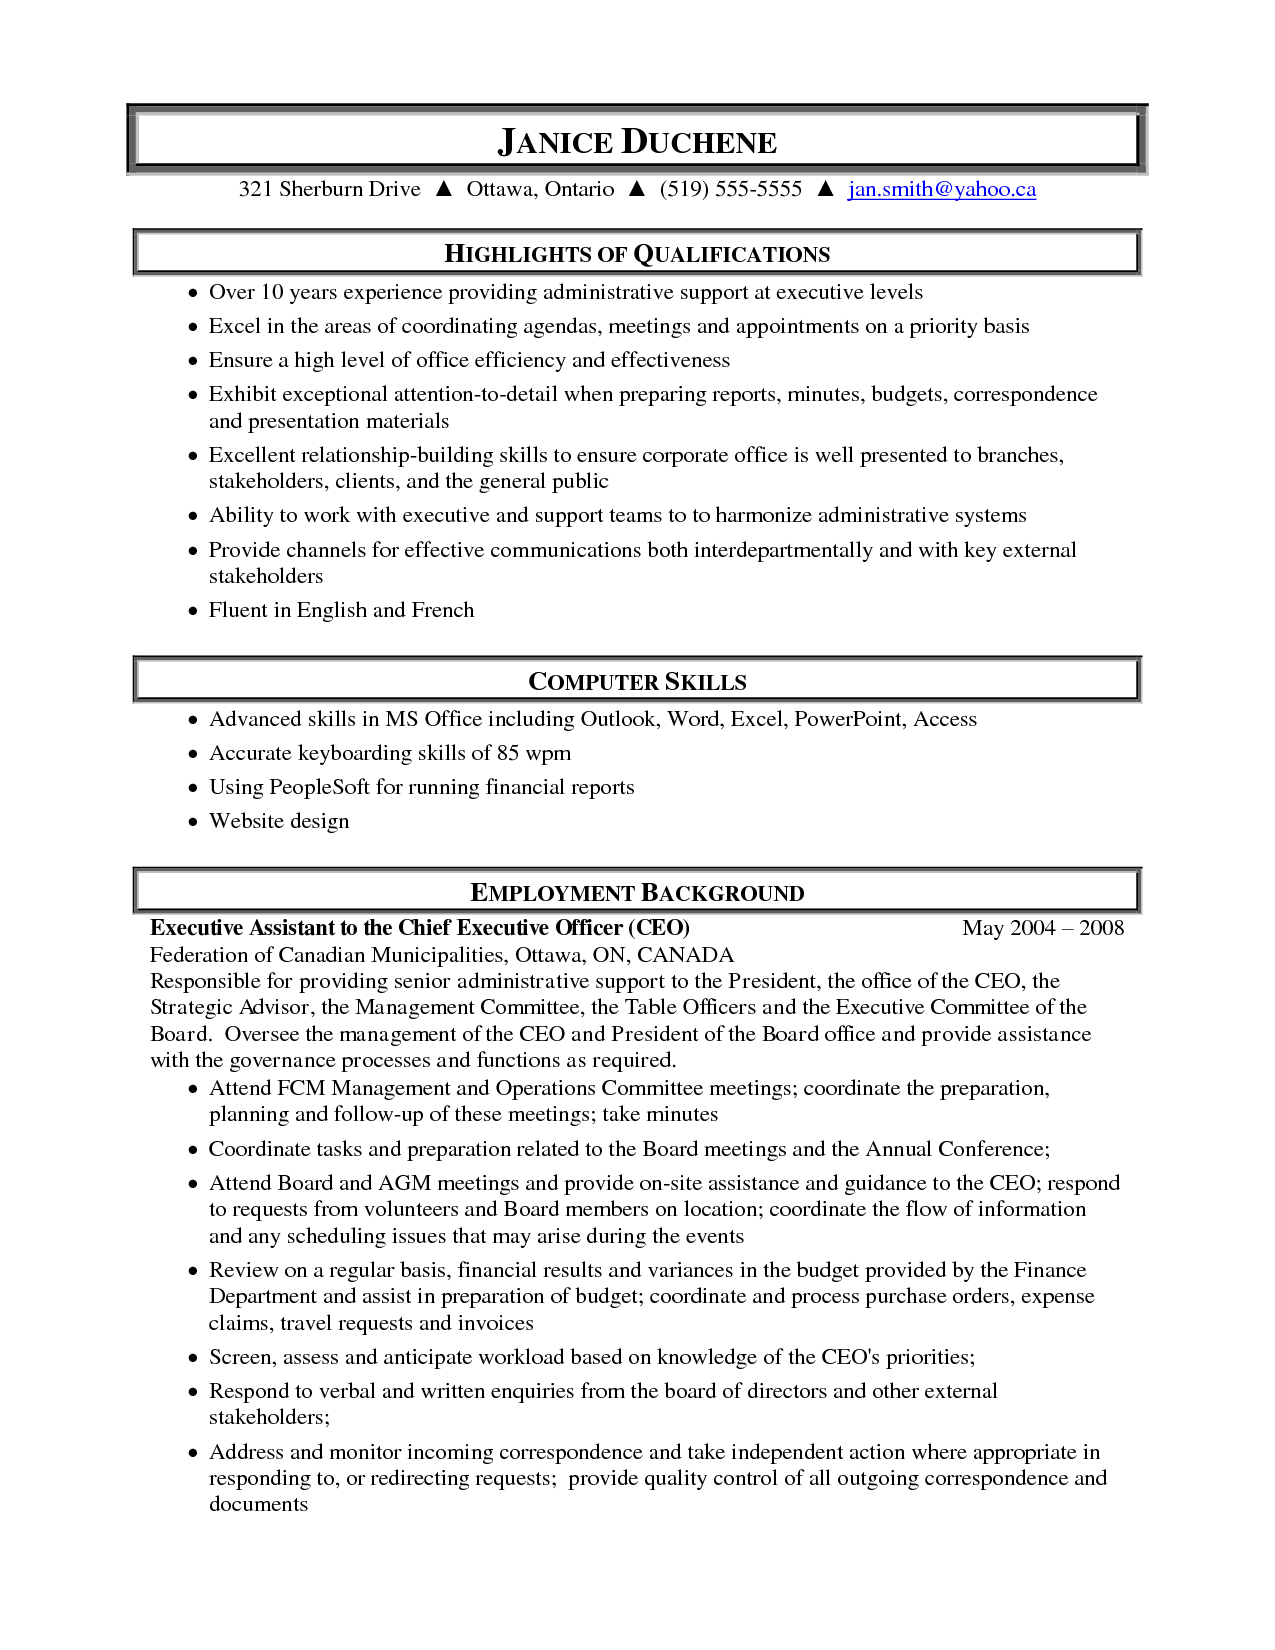 medical administrative assistant resume samples highlight of qualifications - Administrative Support Resume Samples